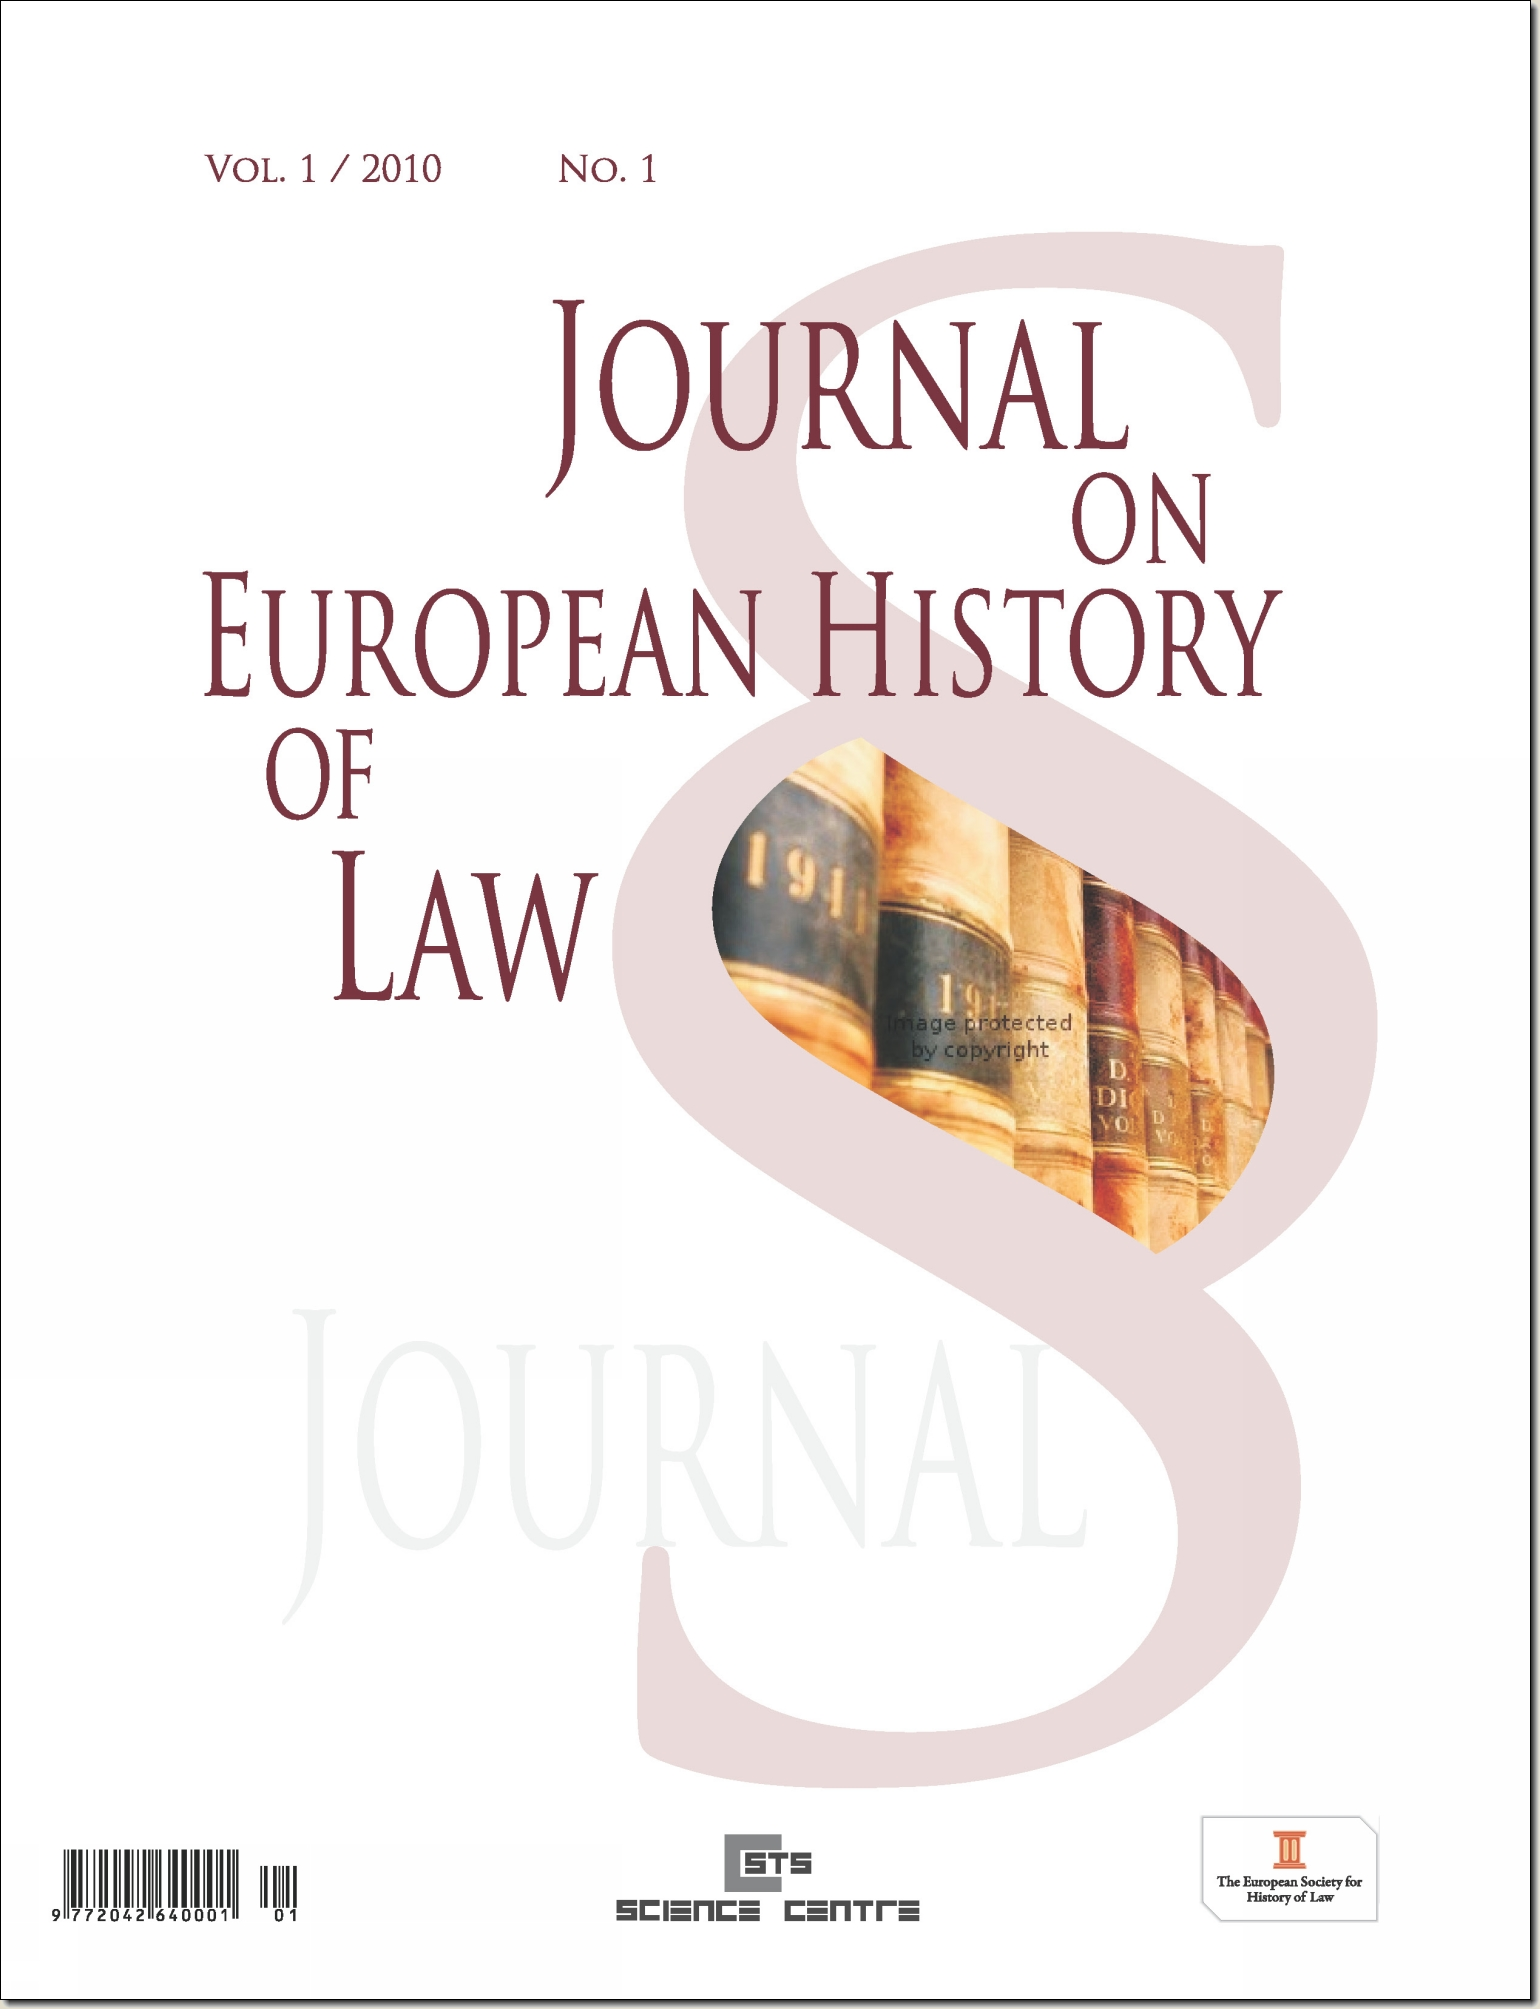 Call for Papers: Journal on European History of Law